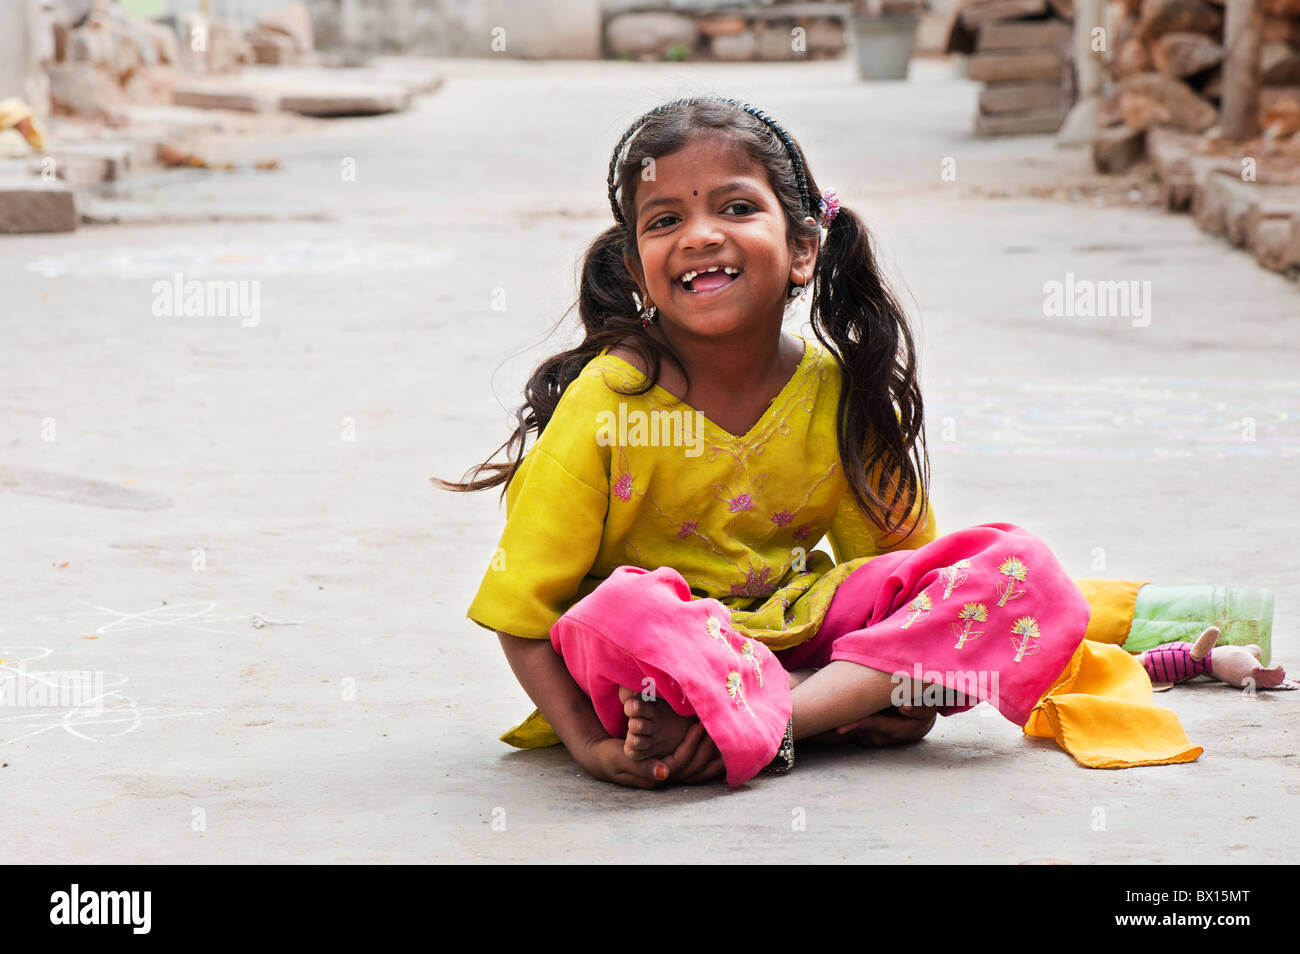 Smiling happy Indian village girl with a soft toy sitting in the street. Kothacheruvu, Andhra Pradesh, India - Stock Image